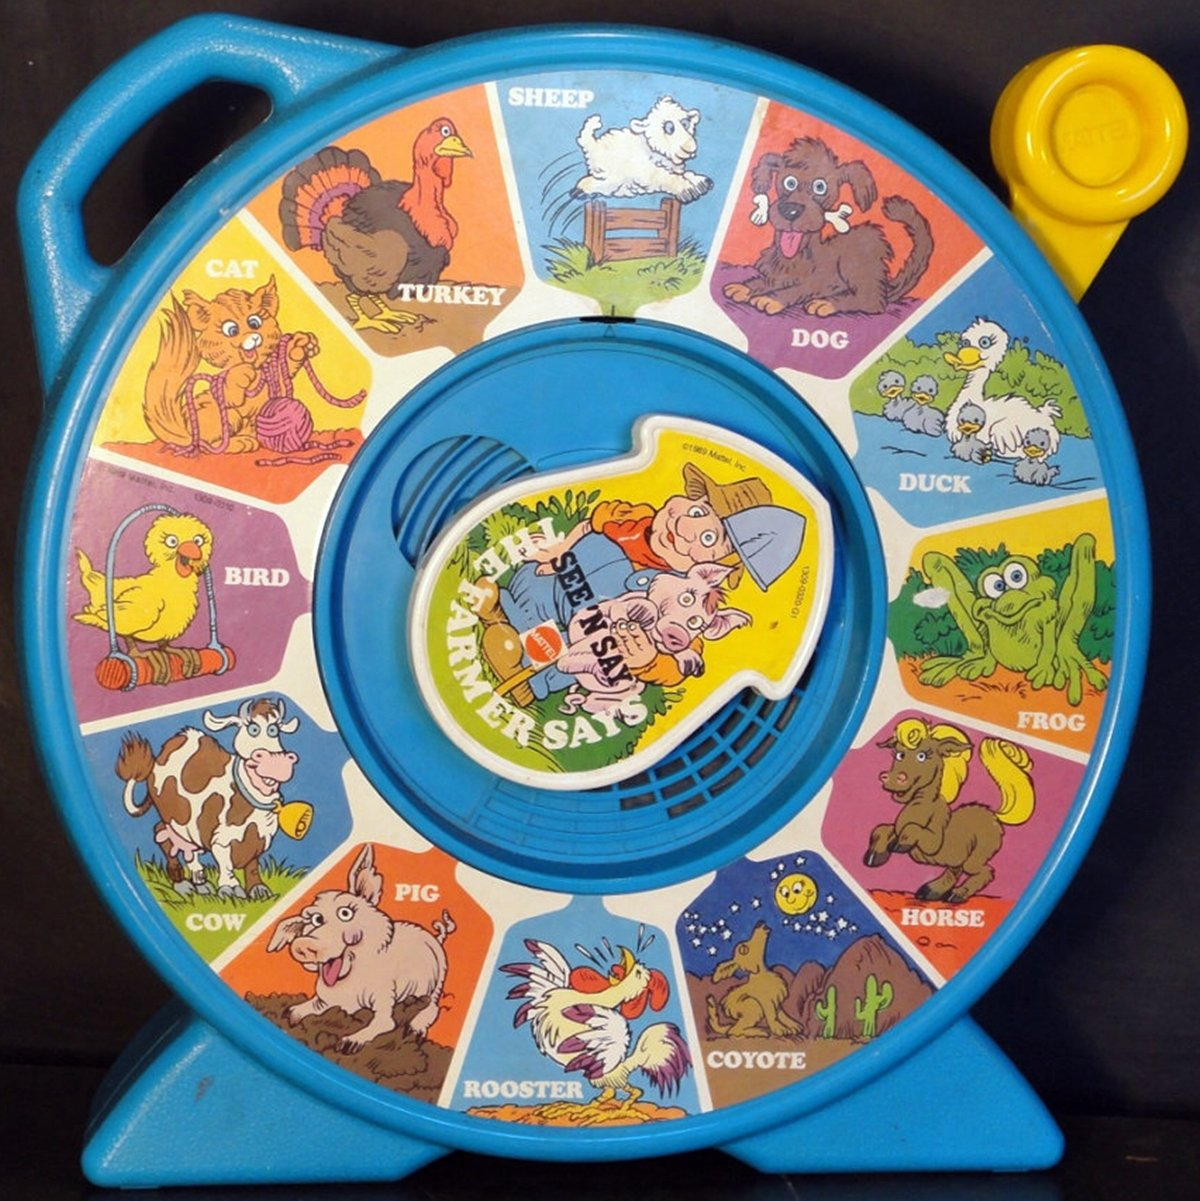 6 20 15 Musical Toys From Your Childhood We Bet You've Forgotten About